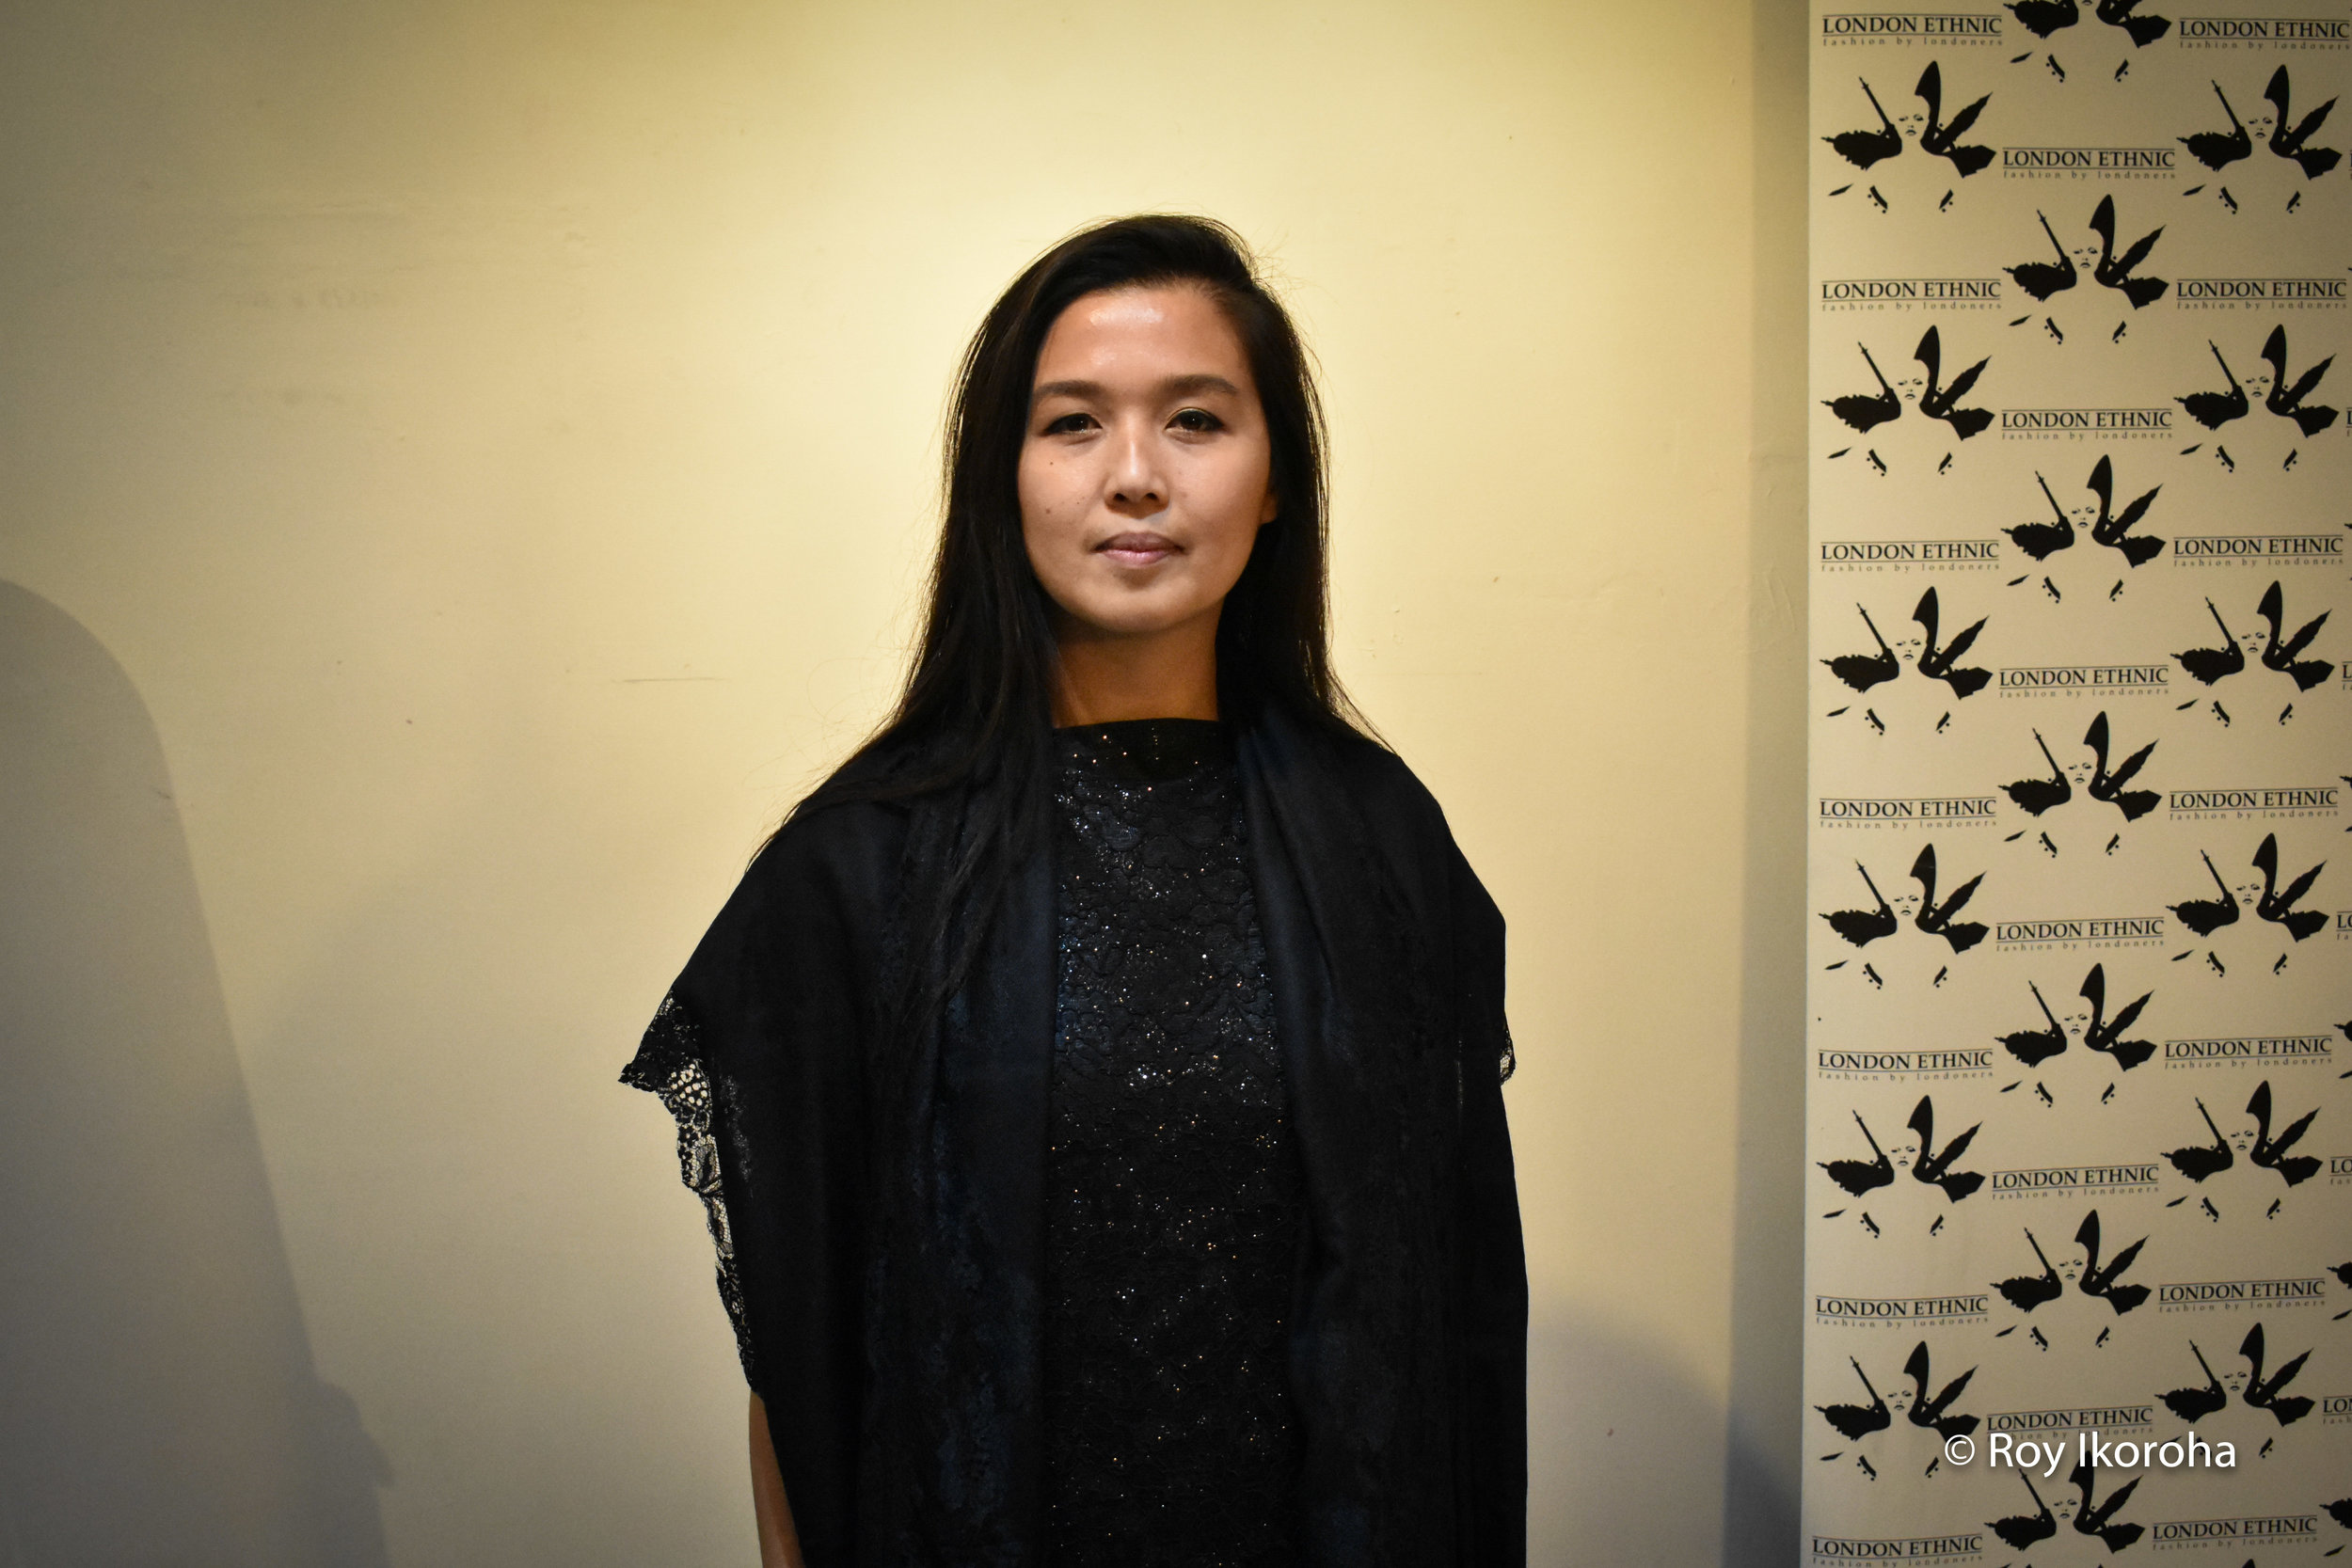 Catherine Pham for London Ethnic, photographed at 508 King's Road Gallery, Chelsea, London